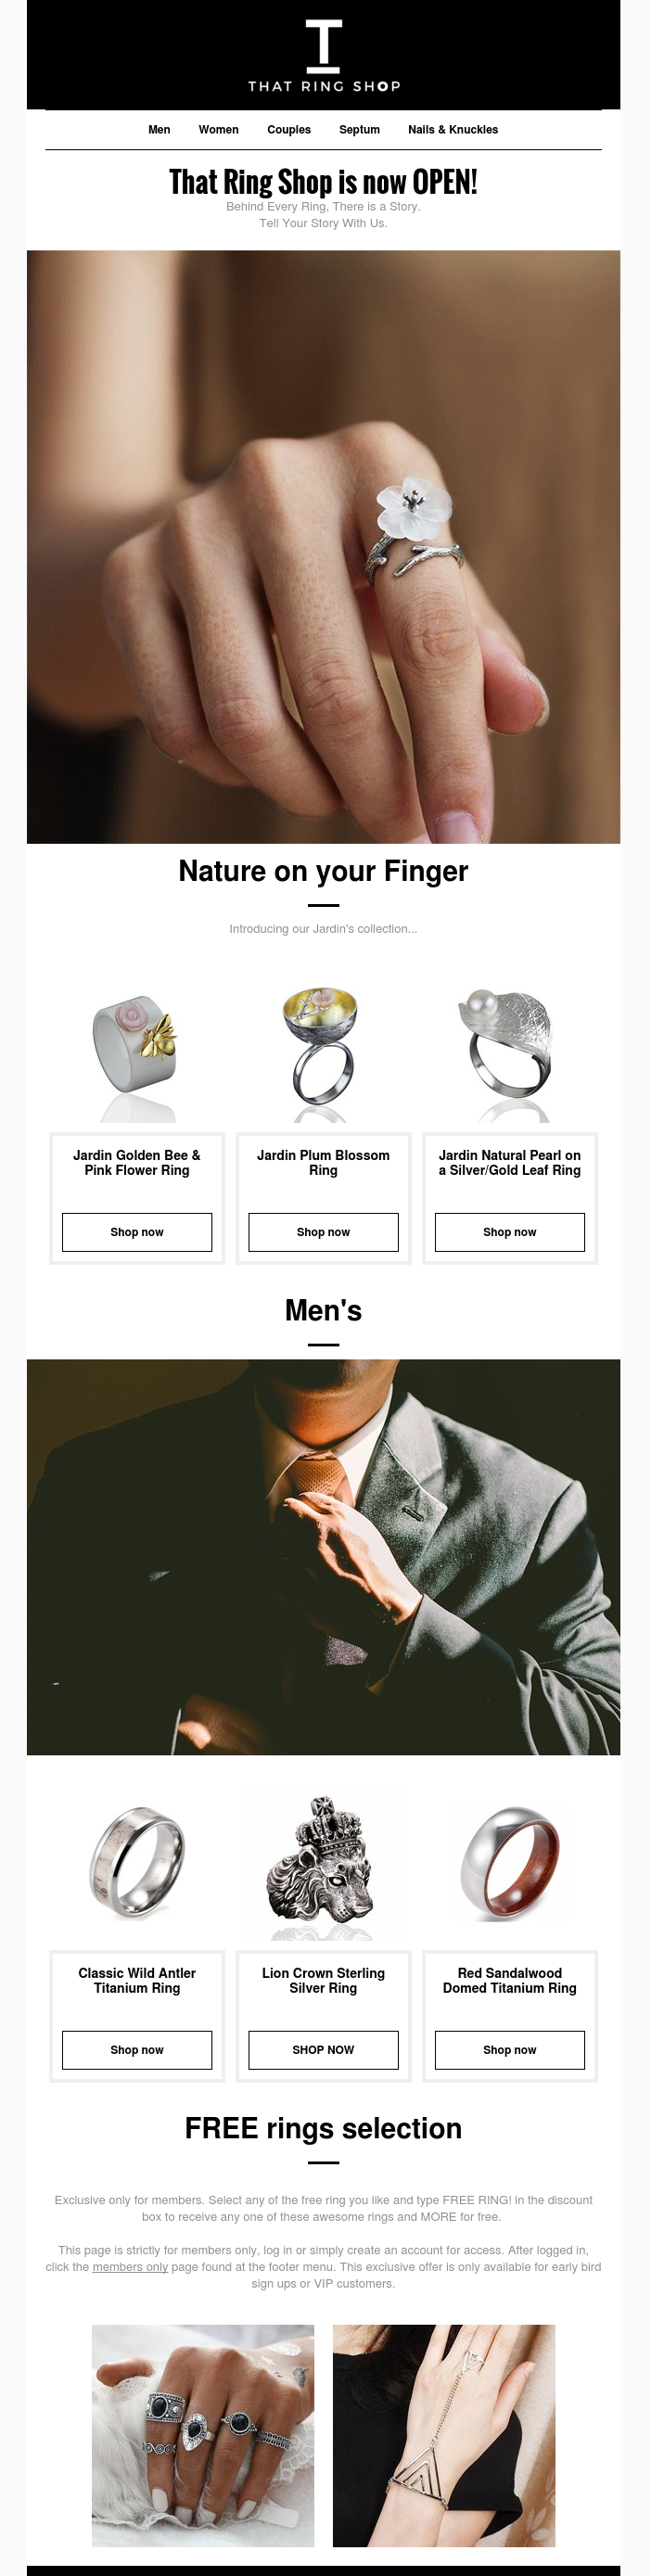 soundest-ecommerce-newsletter-examples1